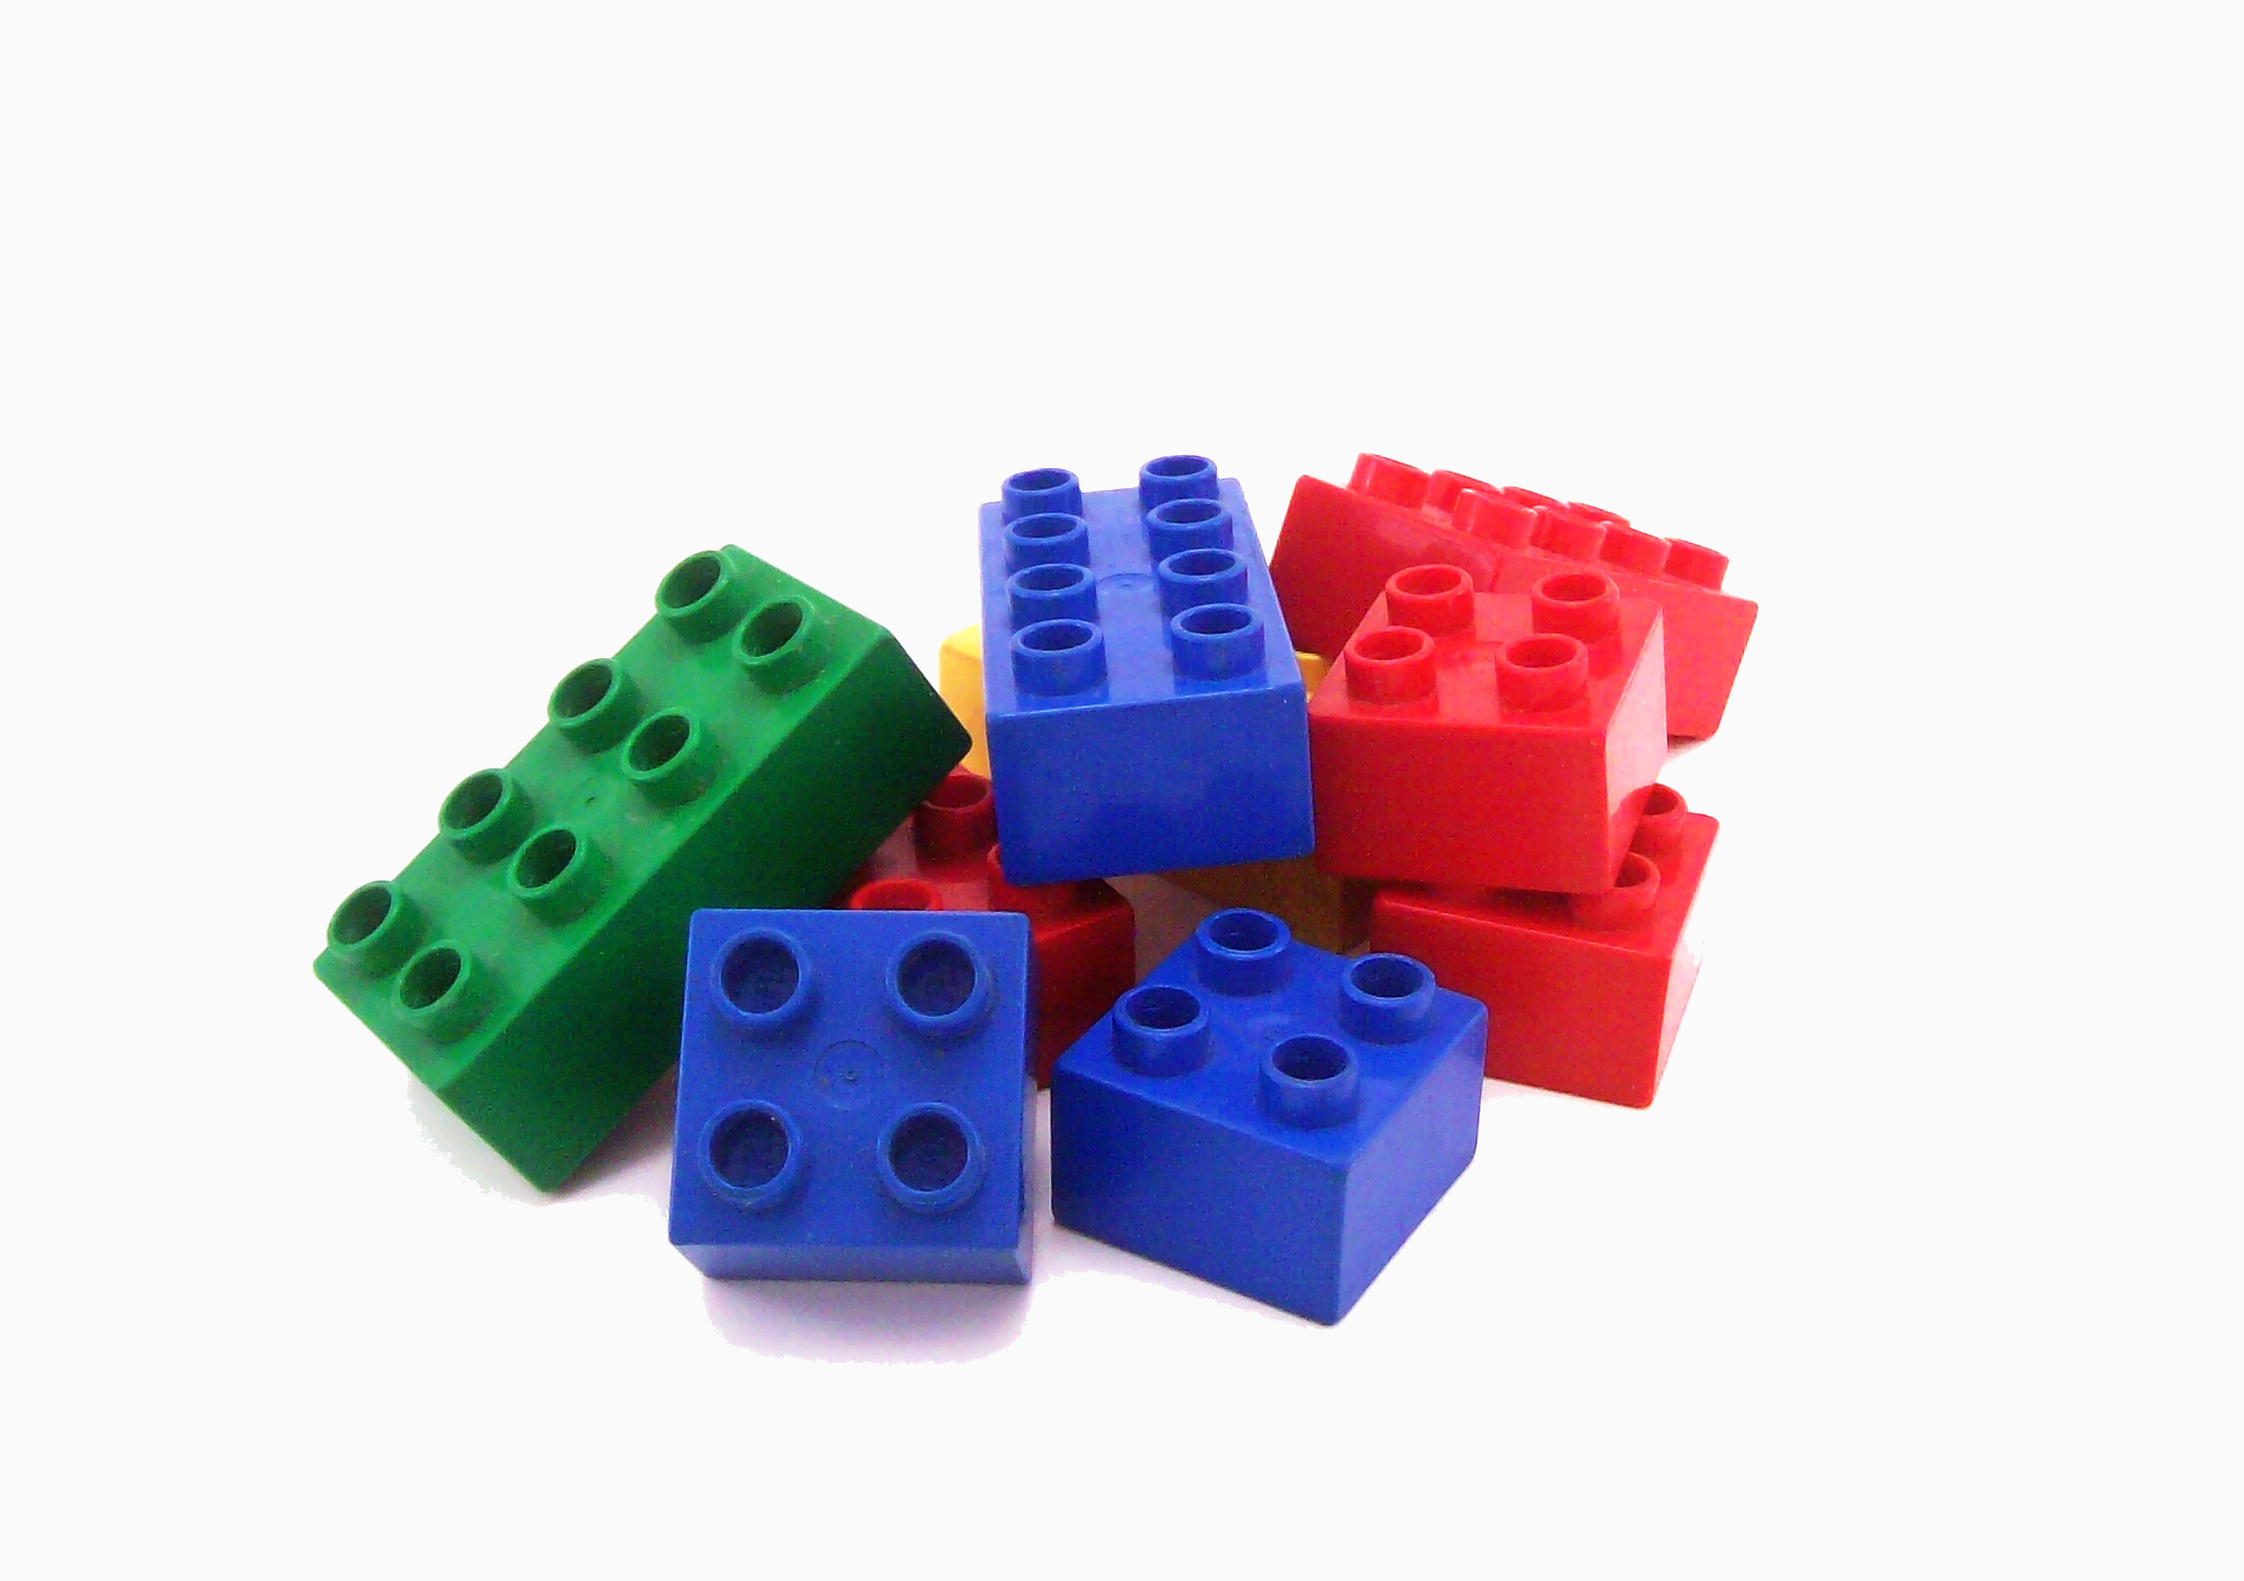 lego brick side view clipart - photo #28